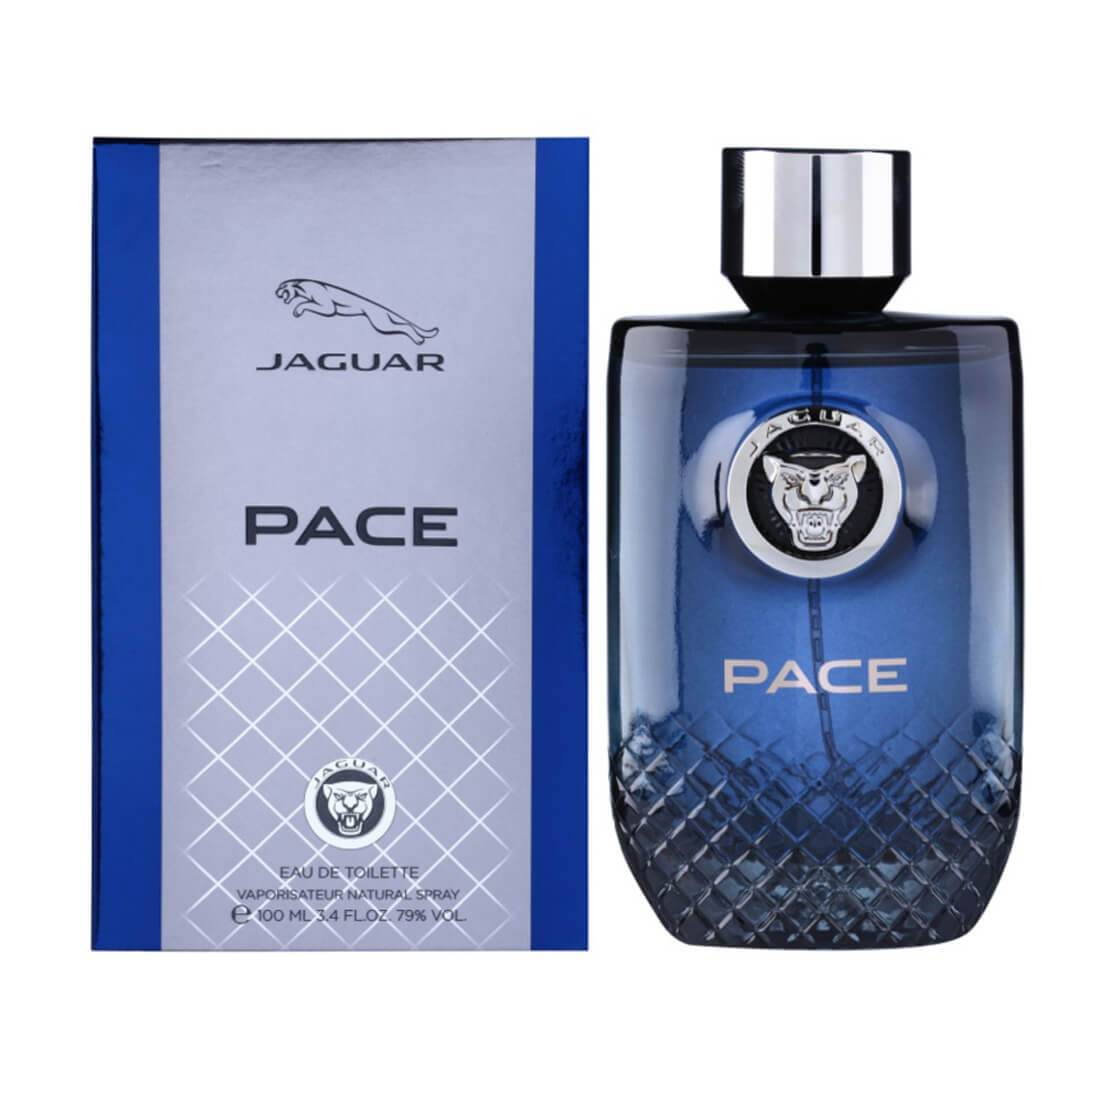 Jaguar Pace EDT Perfume For Men - 100ml